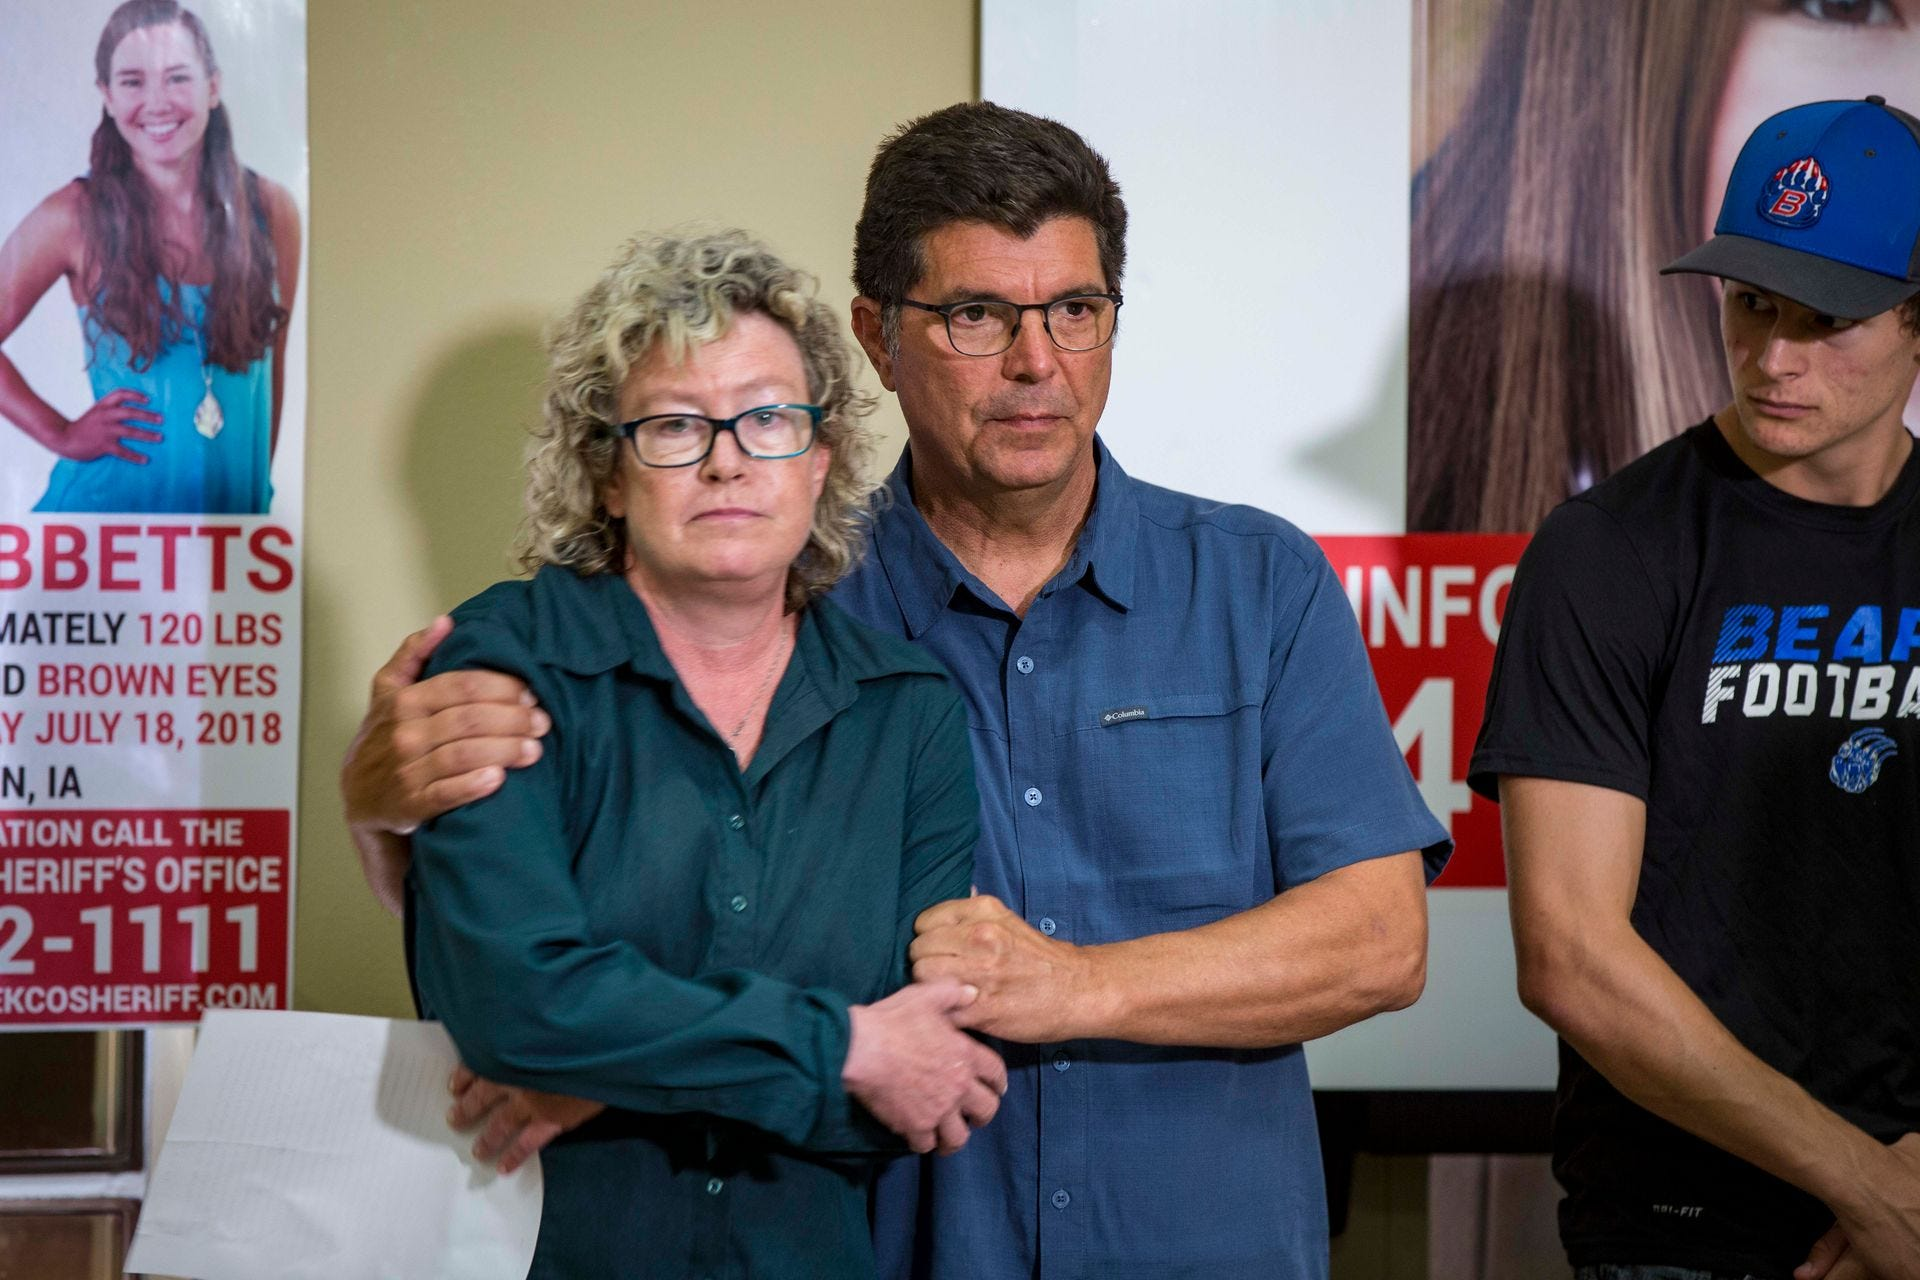 Mollie Tibbetts' mom took in son of Mexican immigrants after murder suspect's arrest, report says